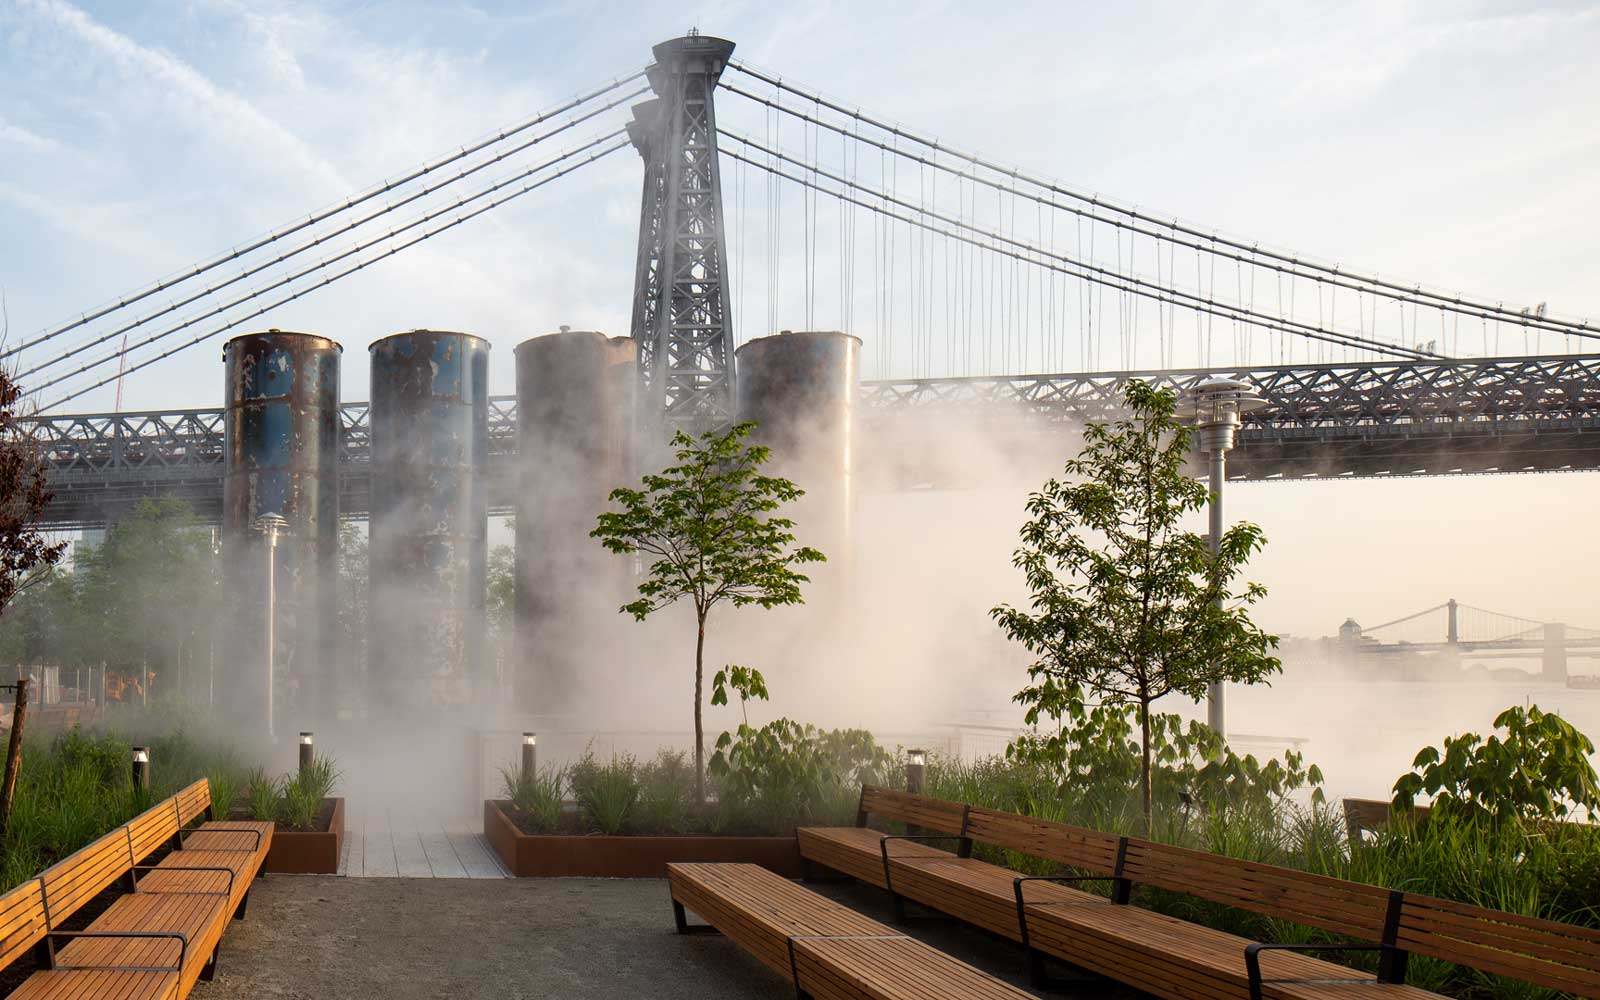 View for eh syrup tanks with the fog feature activated, at Domino Park in New York